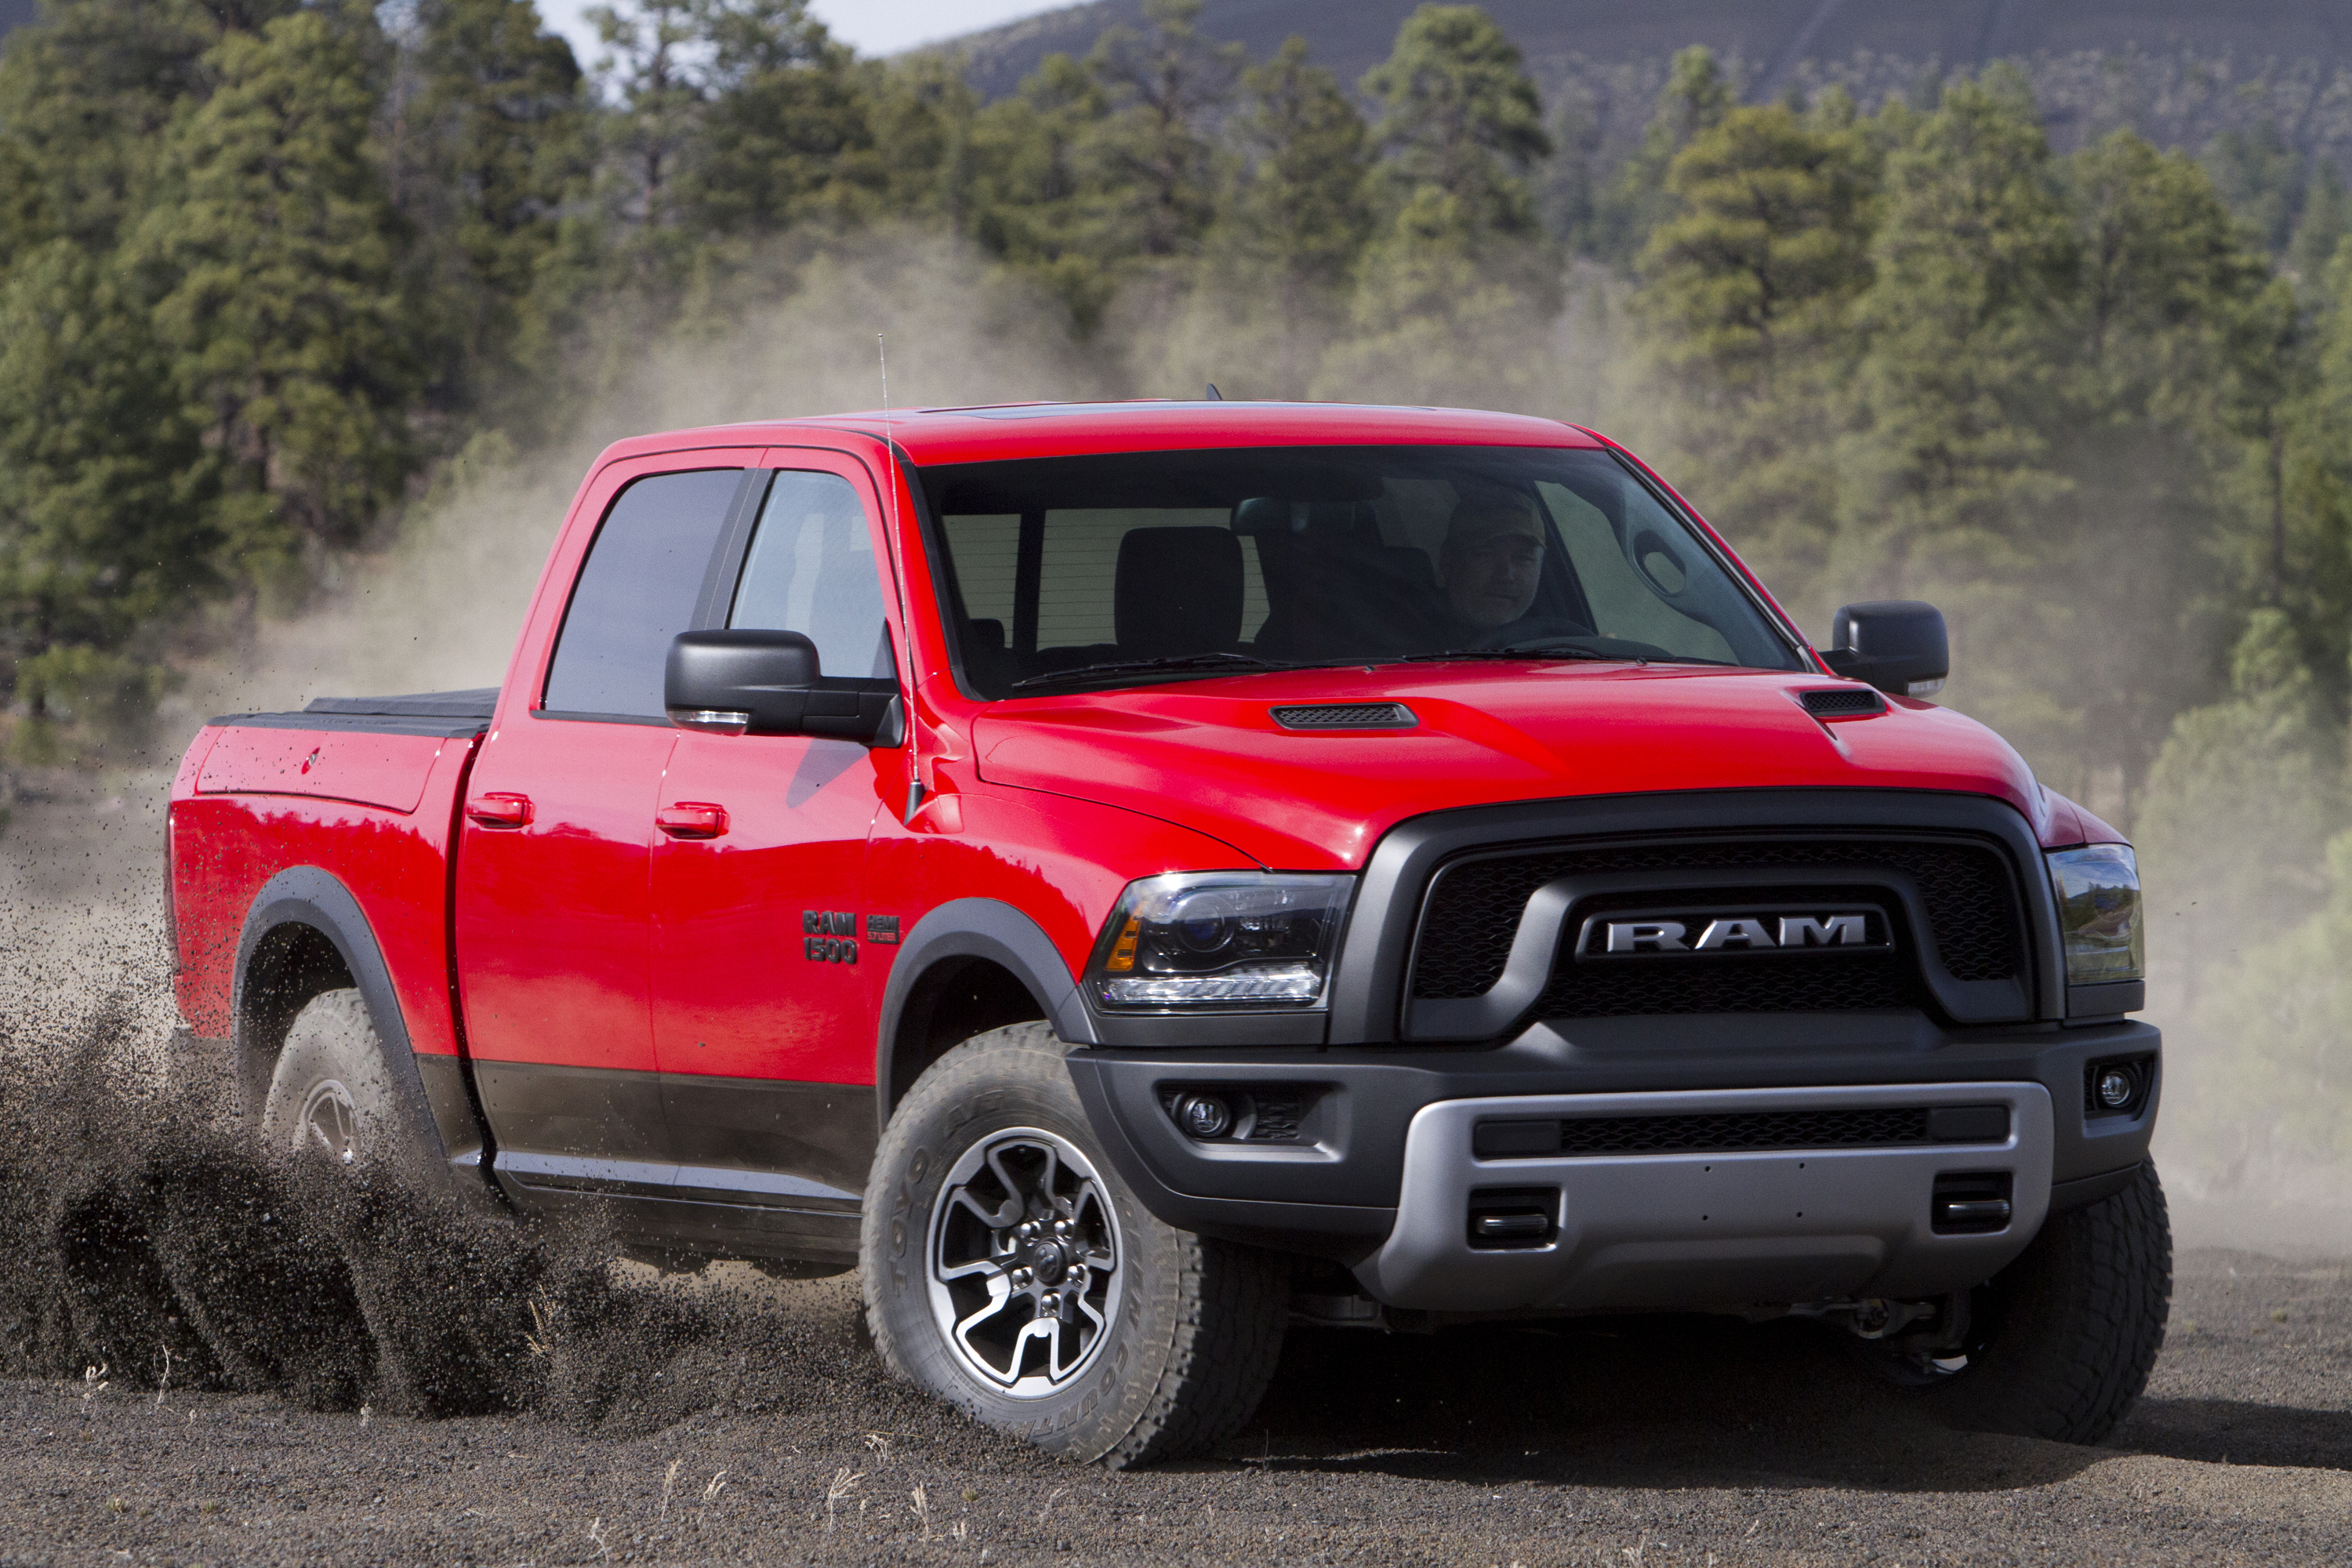 sale ram mcintosh test trucks jil reviews road pickup by used review owner for driving dodge